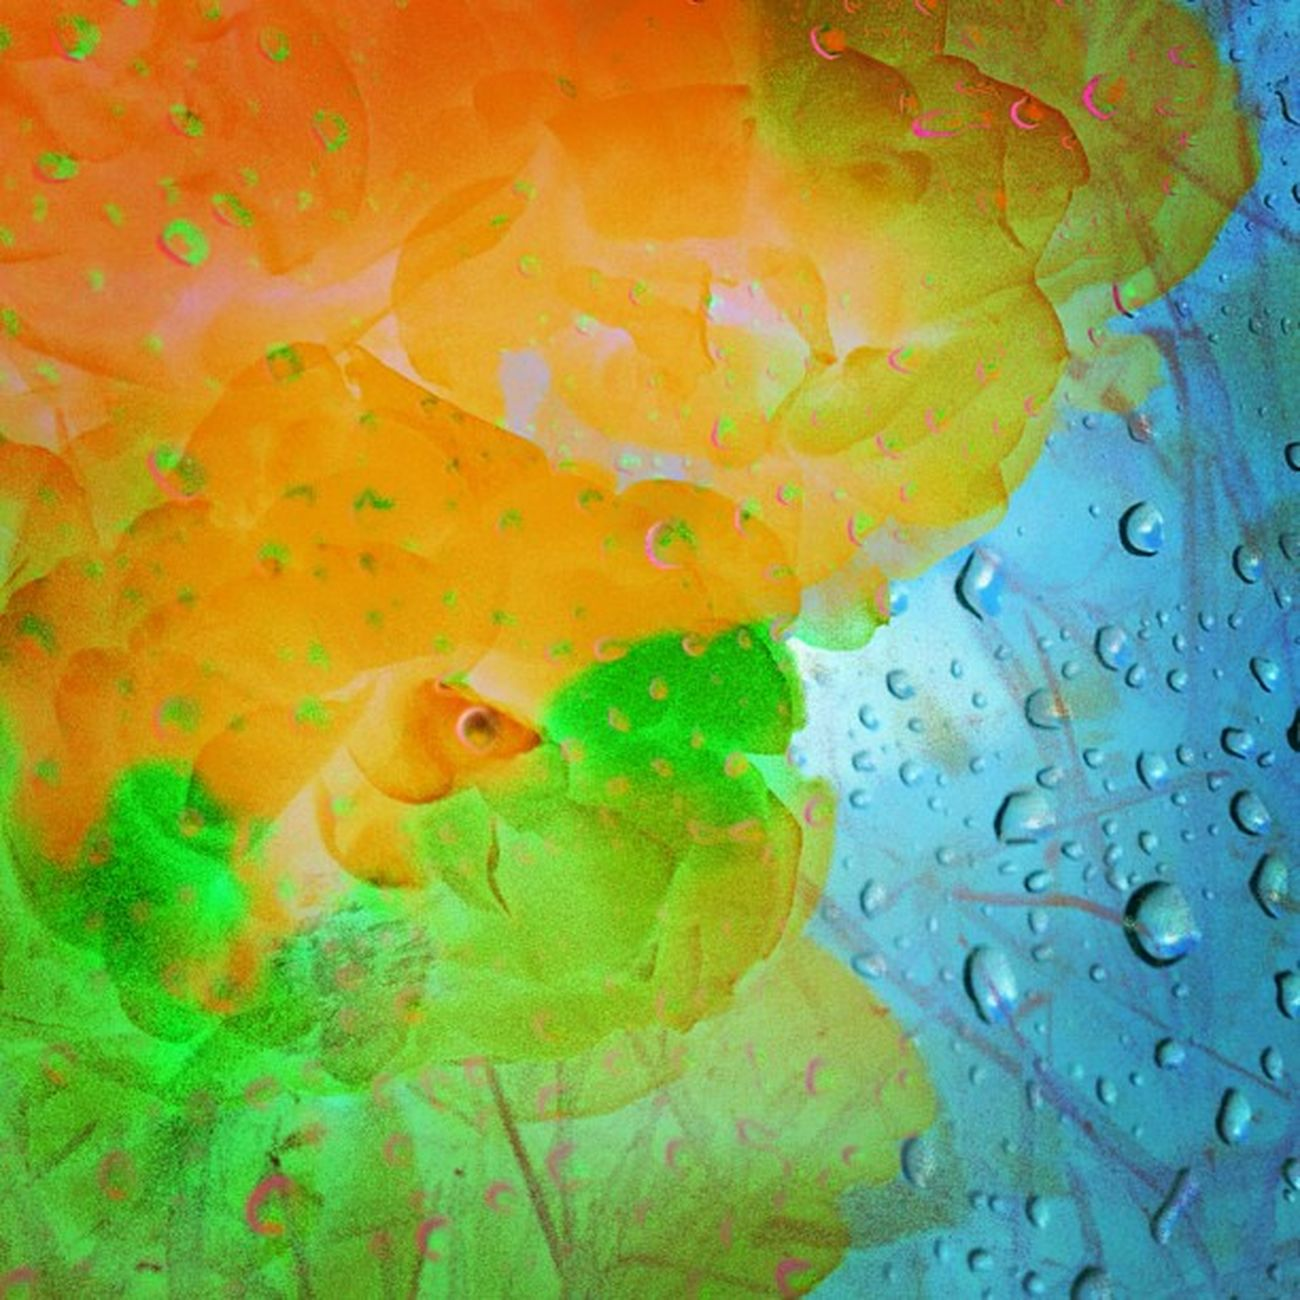 The Discovery of Rain Instaabstract Ig_captures Edit Happycolortrip Abstracto Coloronroids All_shots Dhexpose StayABSTRACT Ace_ Abstractart Deadlydivas Gang_family Ig_one Editjunky Icatching Mobileartistry Femme_elite Instauno Weareinheaven Igsg You_nique_edits Bd Mi55flowerz Abstracters_anonymous Abstract_buff Abstractobsession